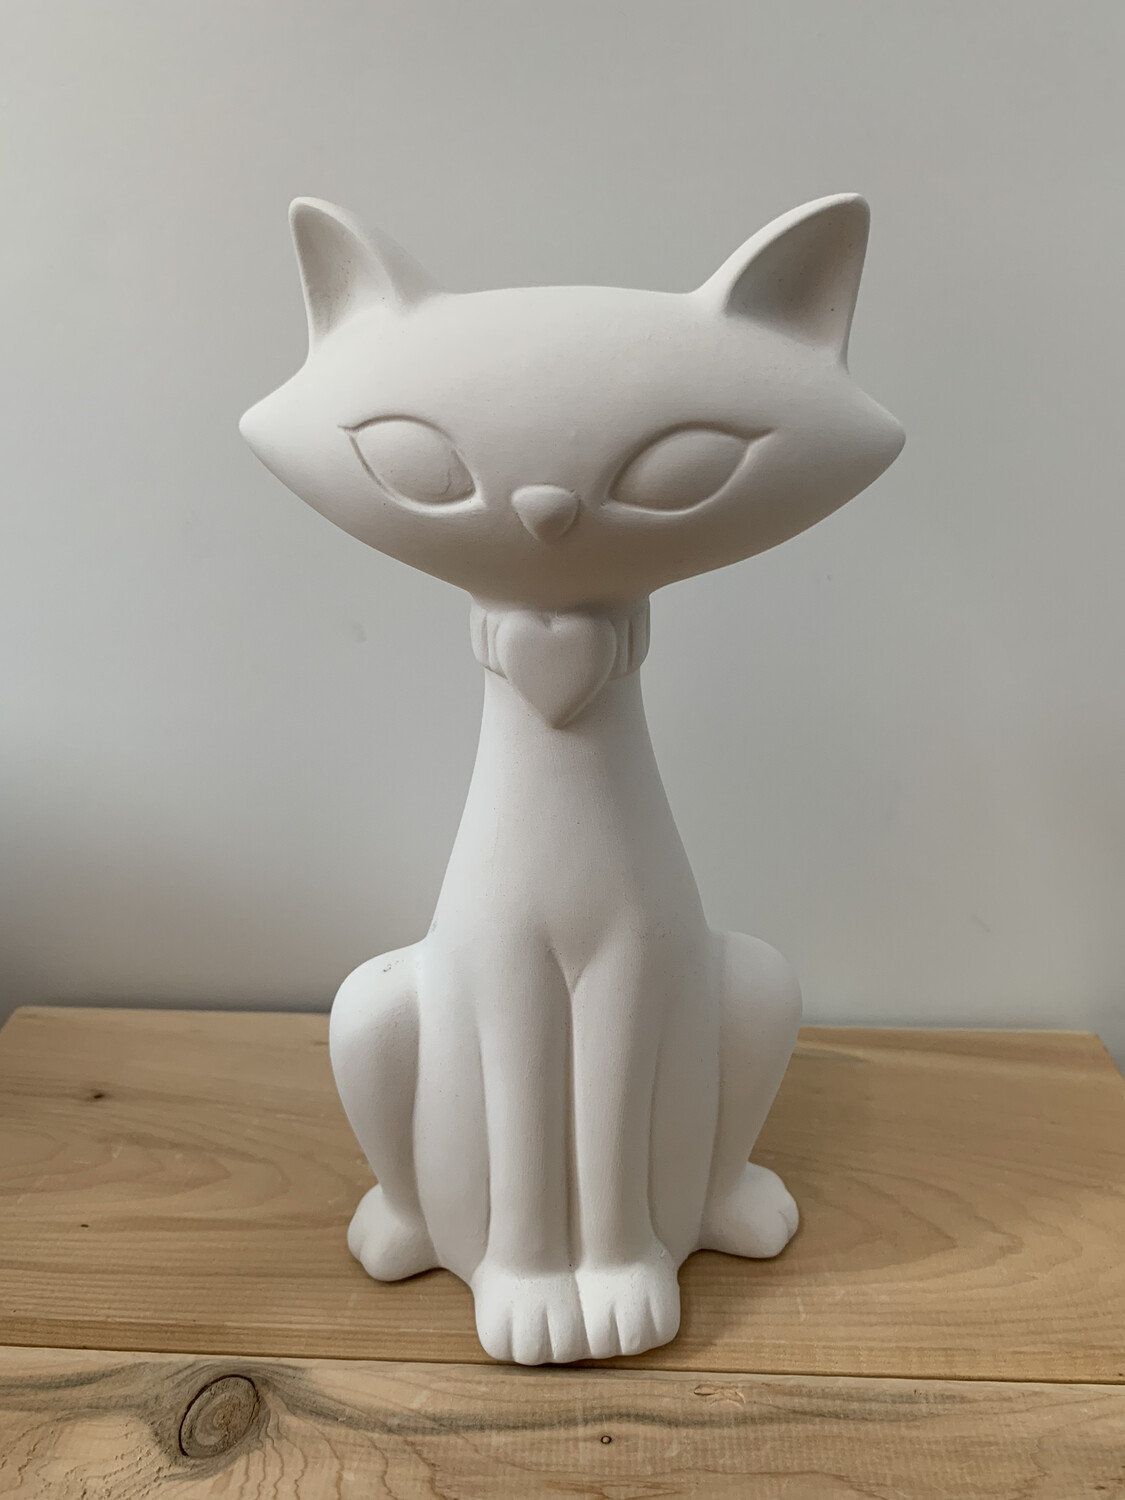 NO FIRE Paint Your Own Pottery Kit -  Ceramic Modern Glam Kitty Cat Figurine Acrylic Painting Kit